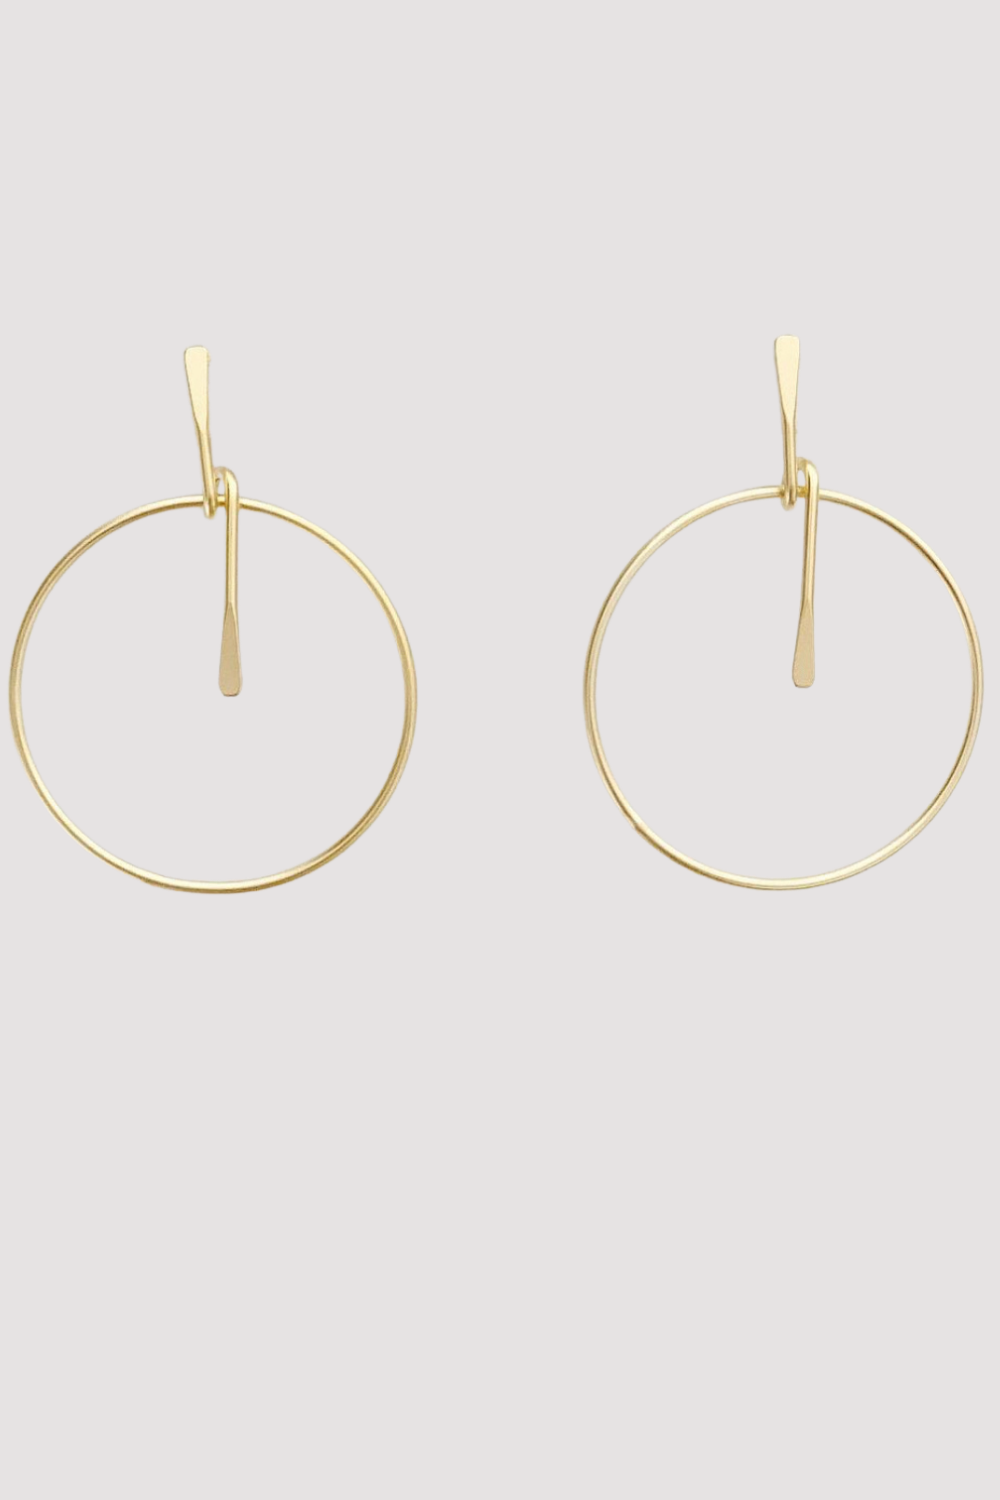 Virtue Jewelry Stick Hoops - Gold Hoop Earrings